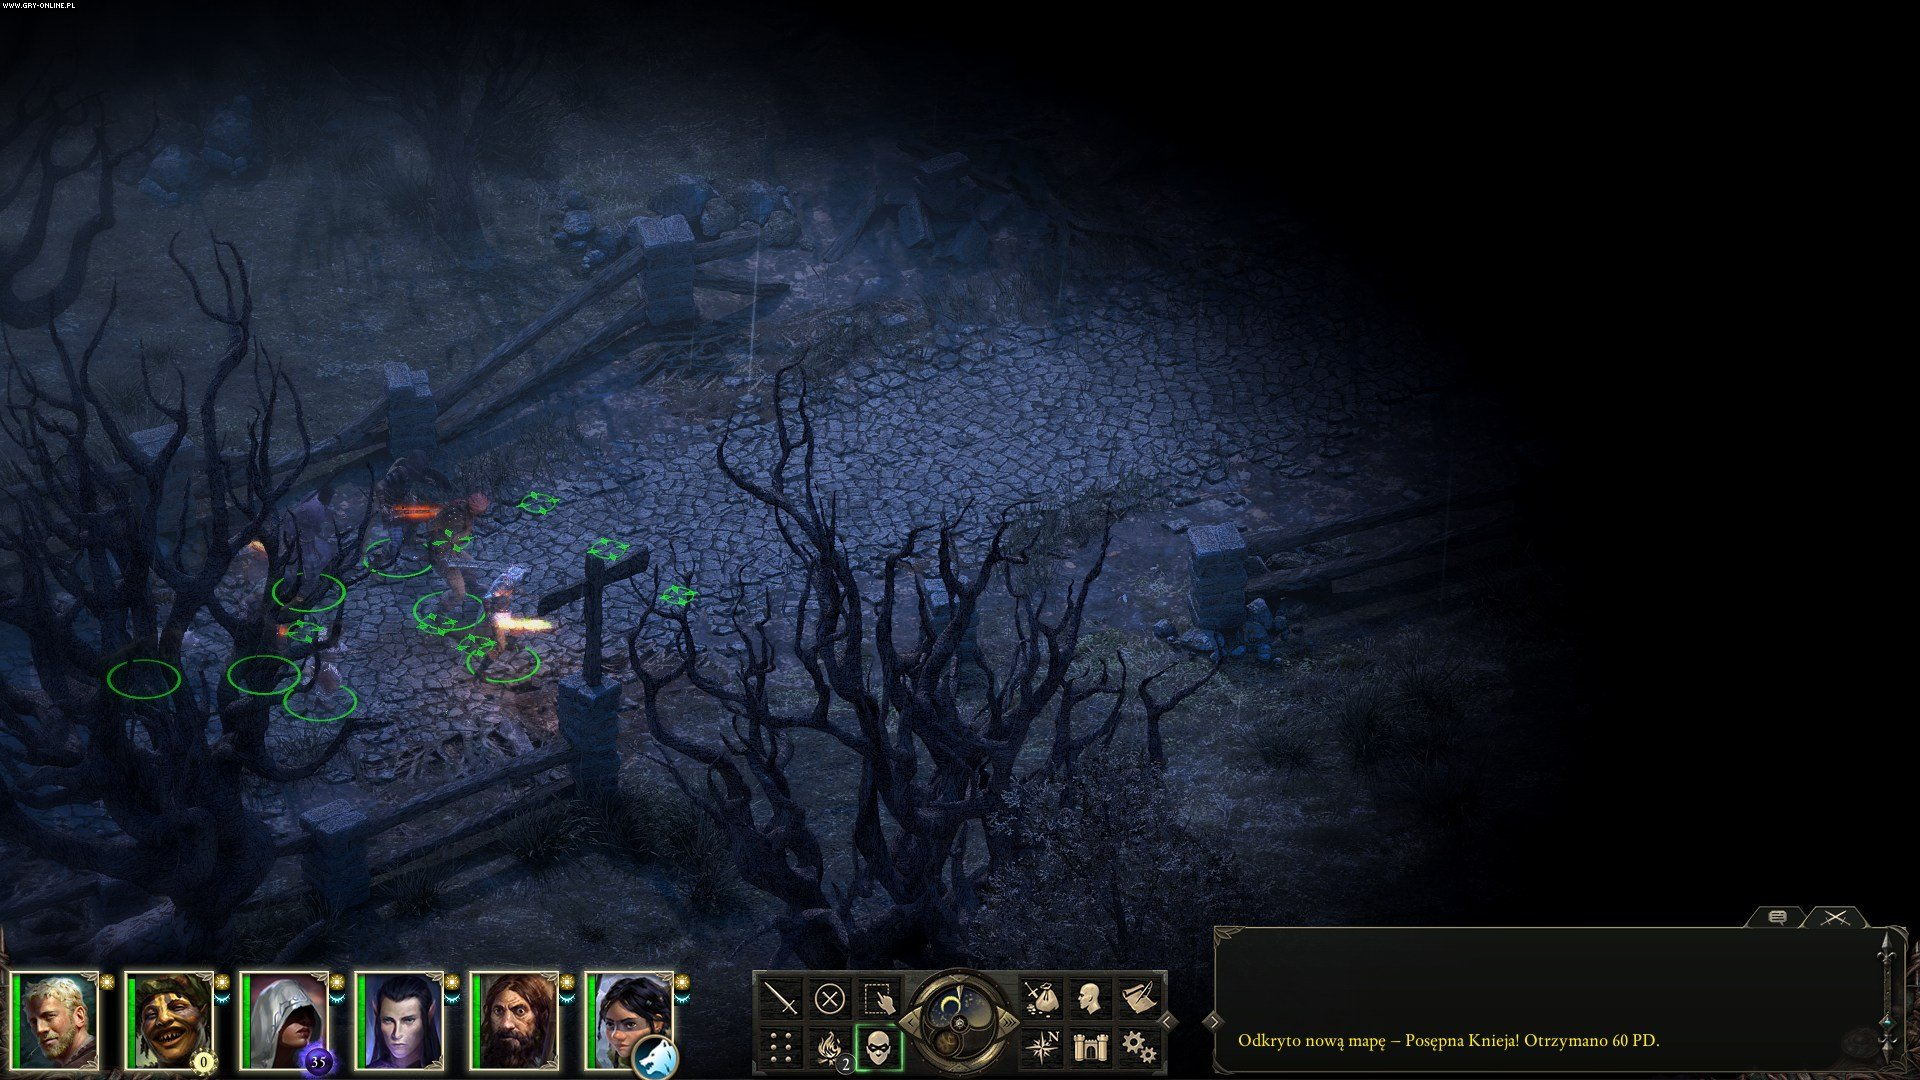 Pillars of Eternity PC Games Image 7/89, Obsidian Entertainment, Paradox Interactive